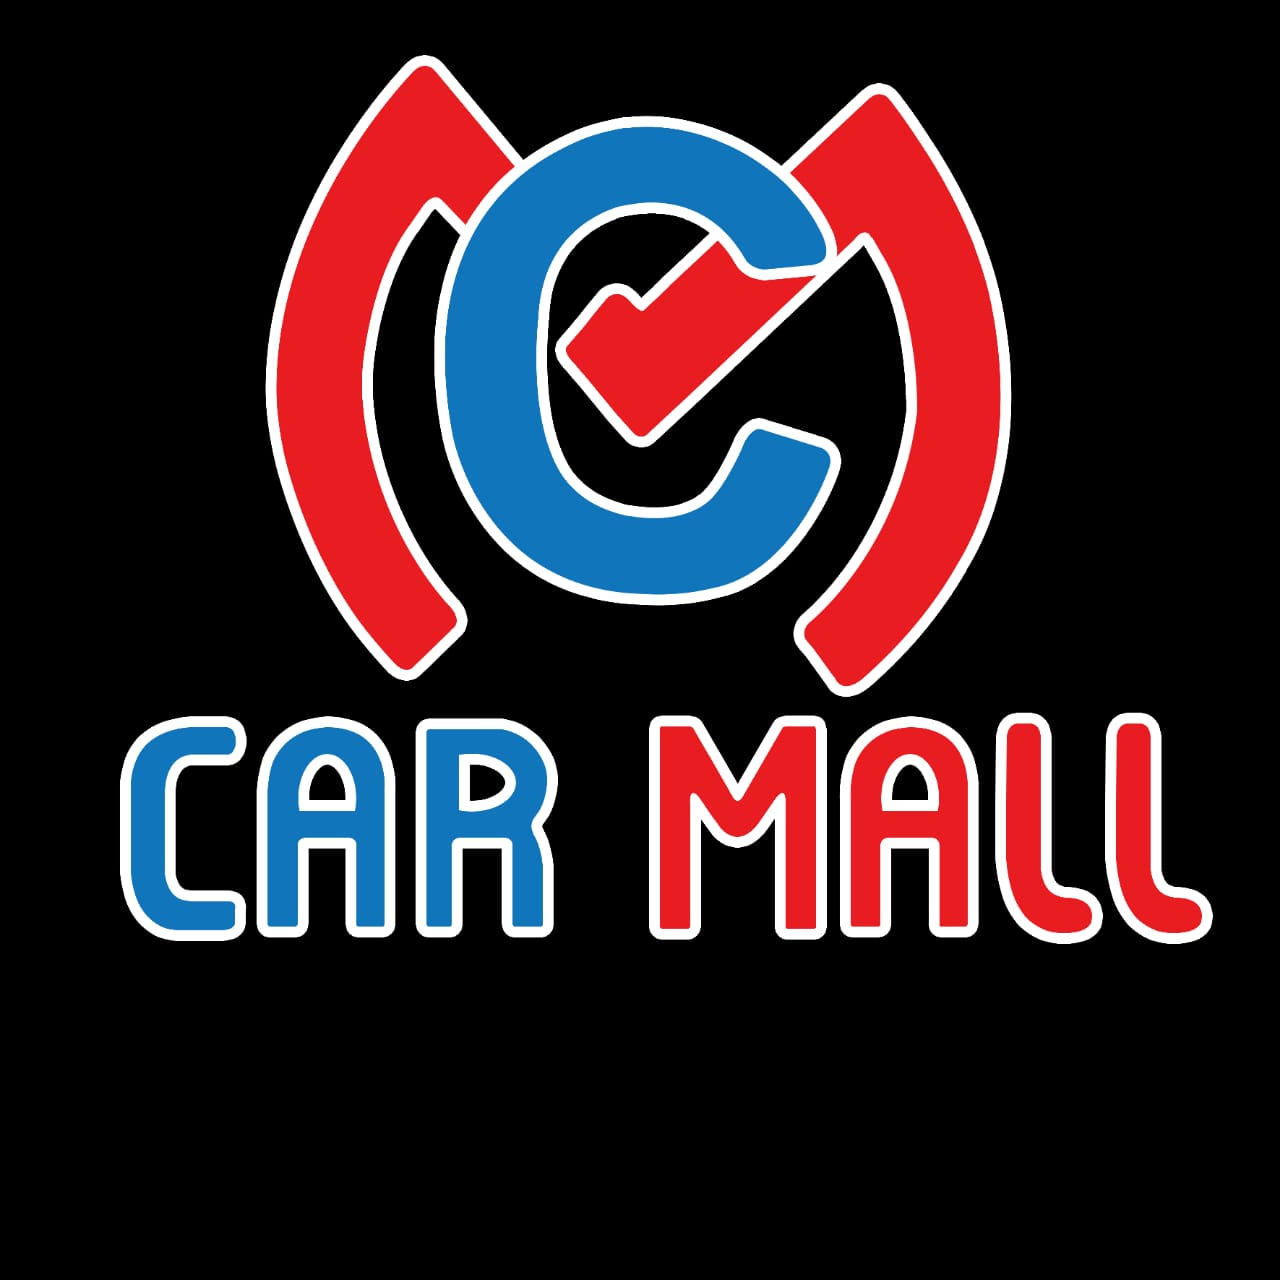 car mall - logo